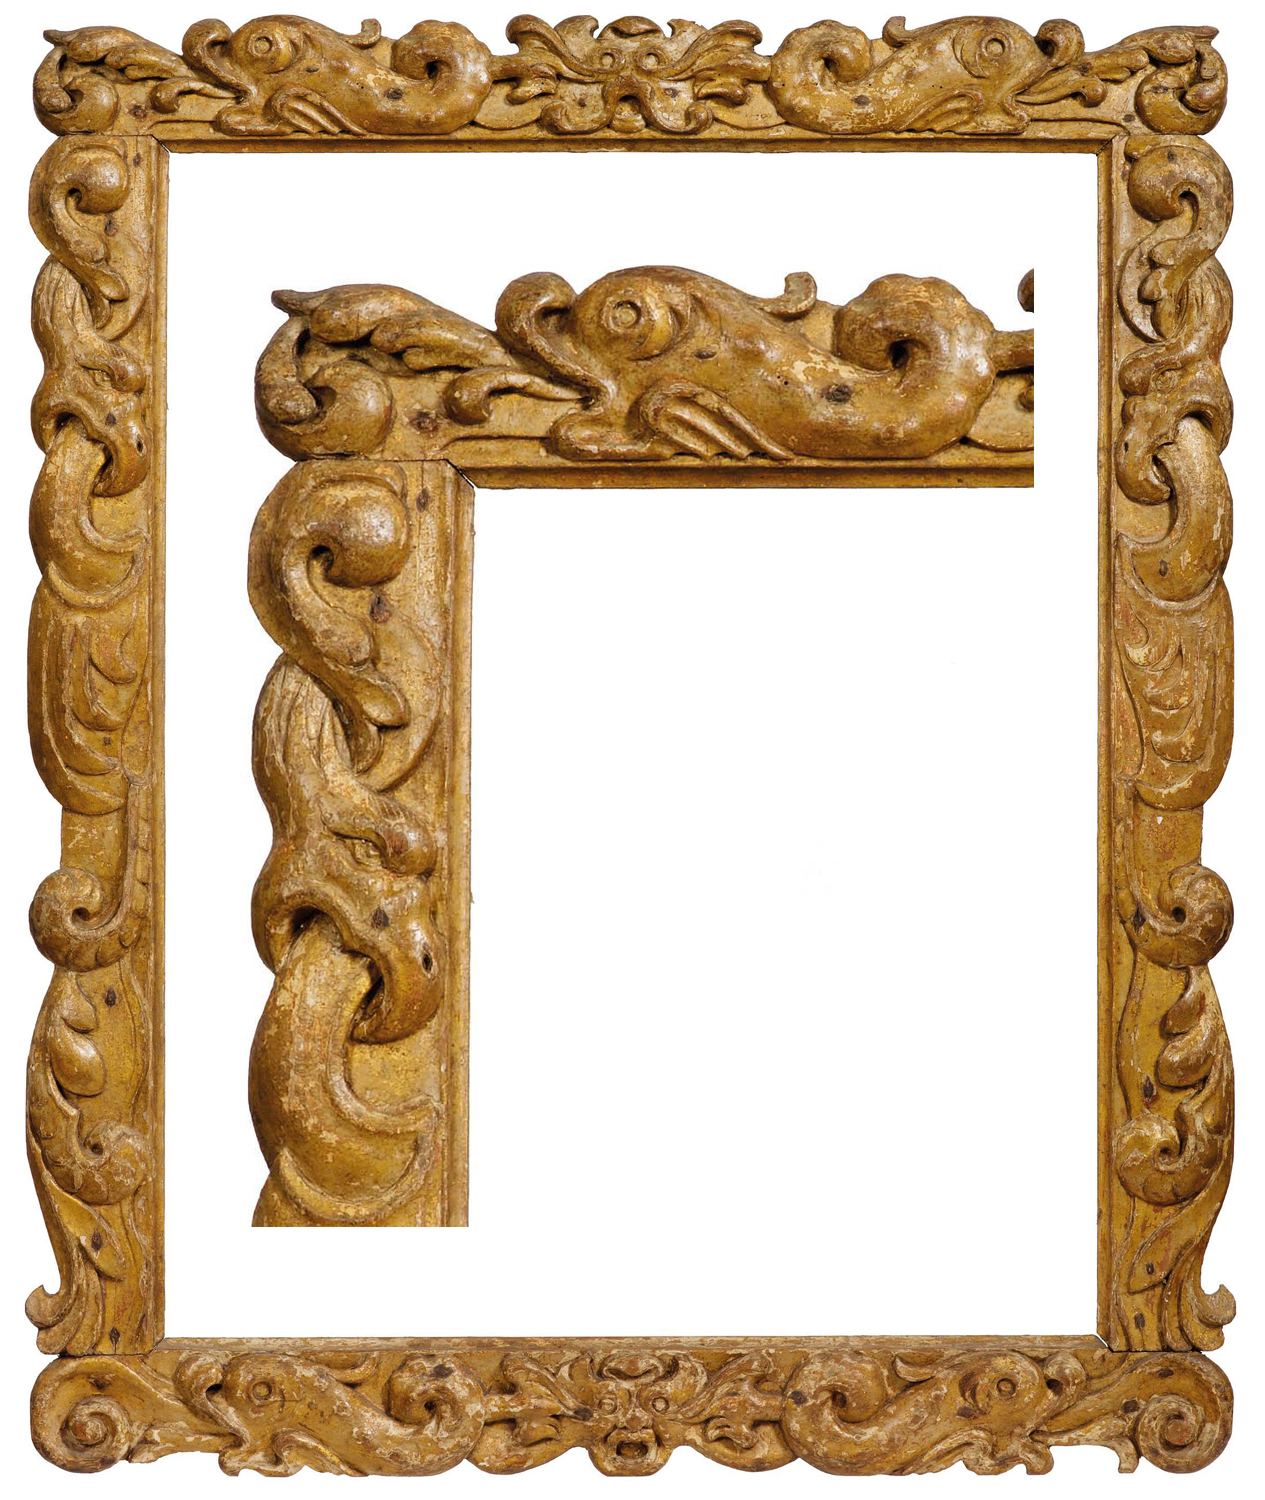 lot 97 an early 17th century auricular frame catalogued as netherlandish but almost certainly british carved in shallow relief with a sea monster mascaron